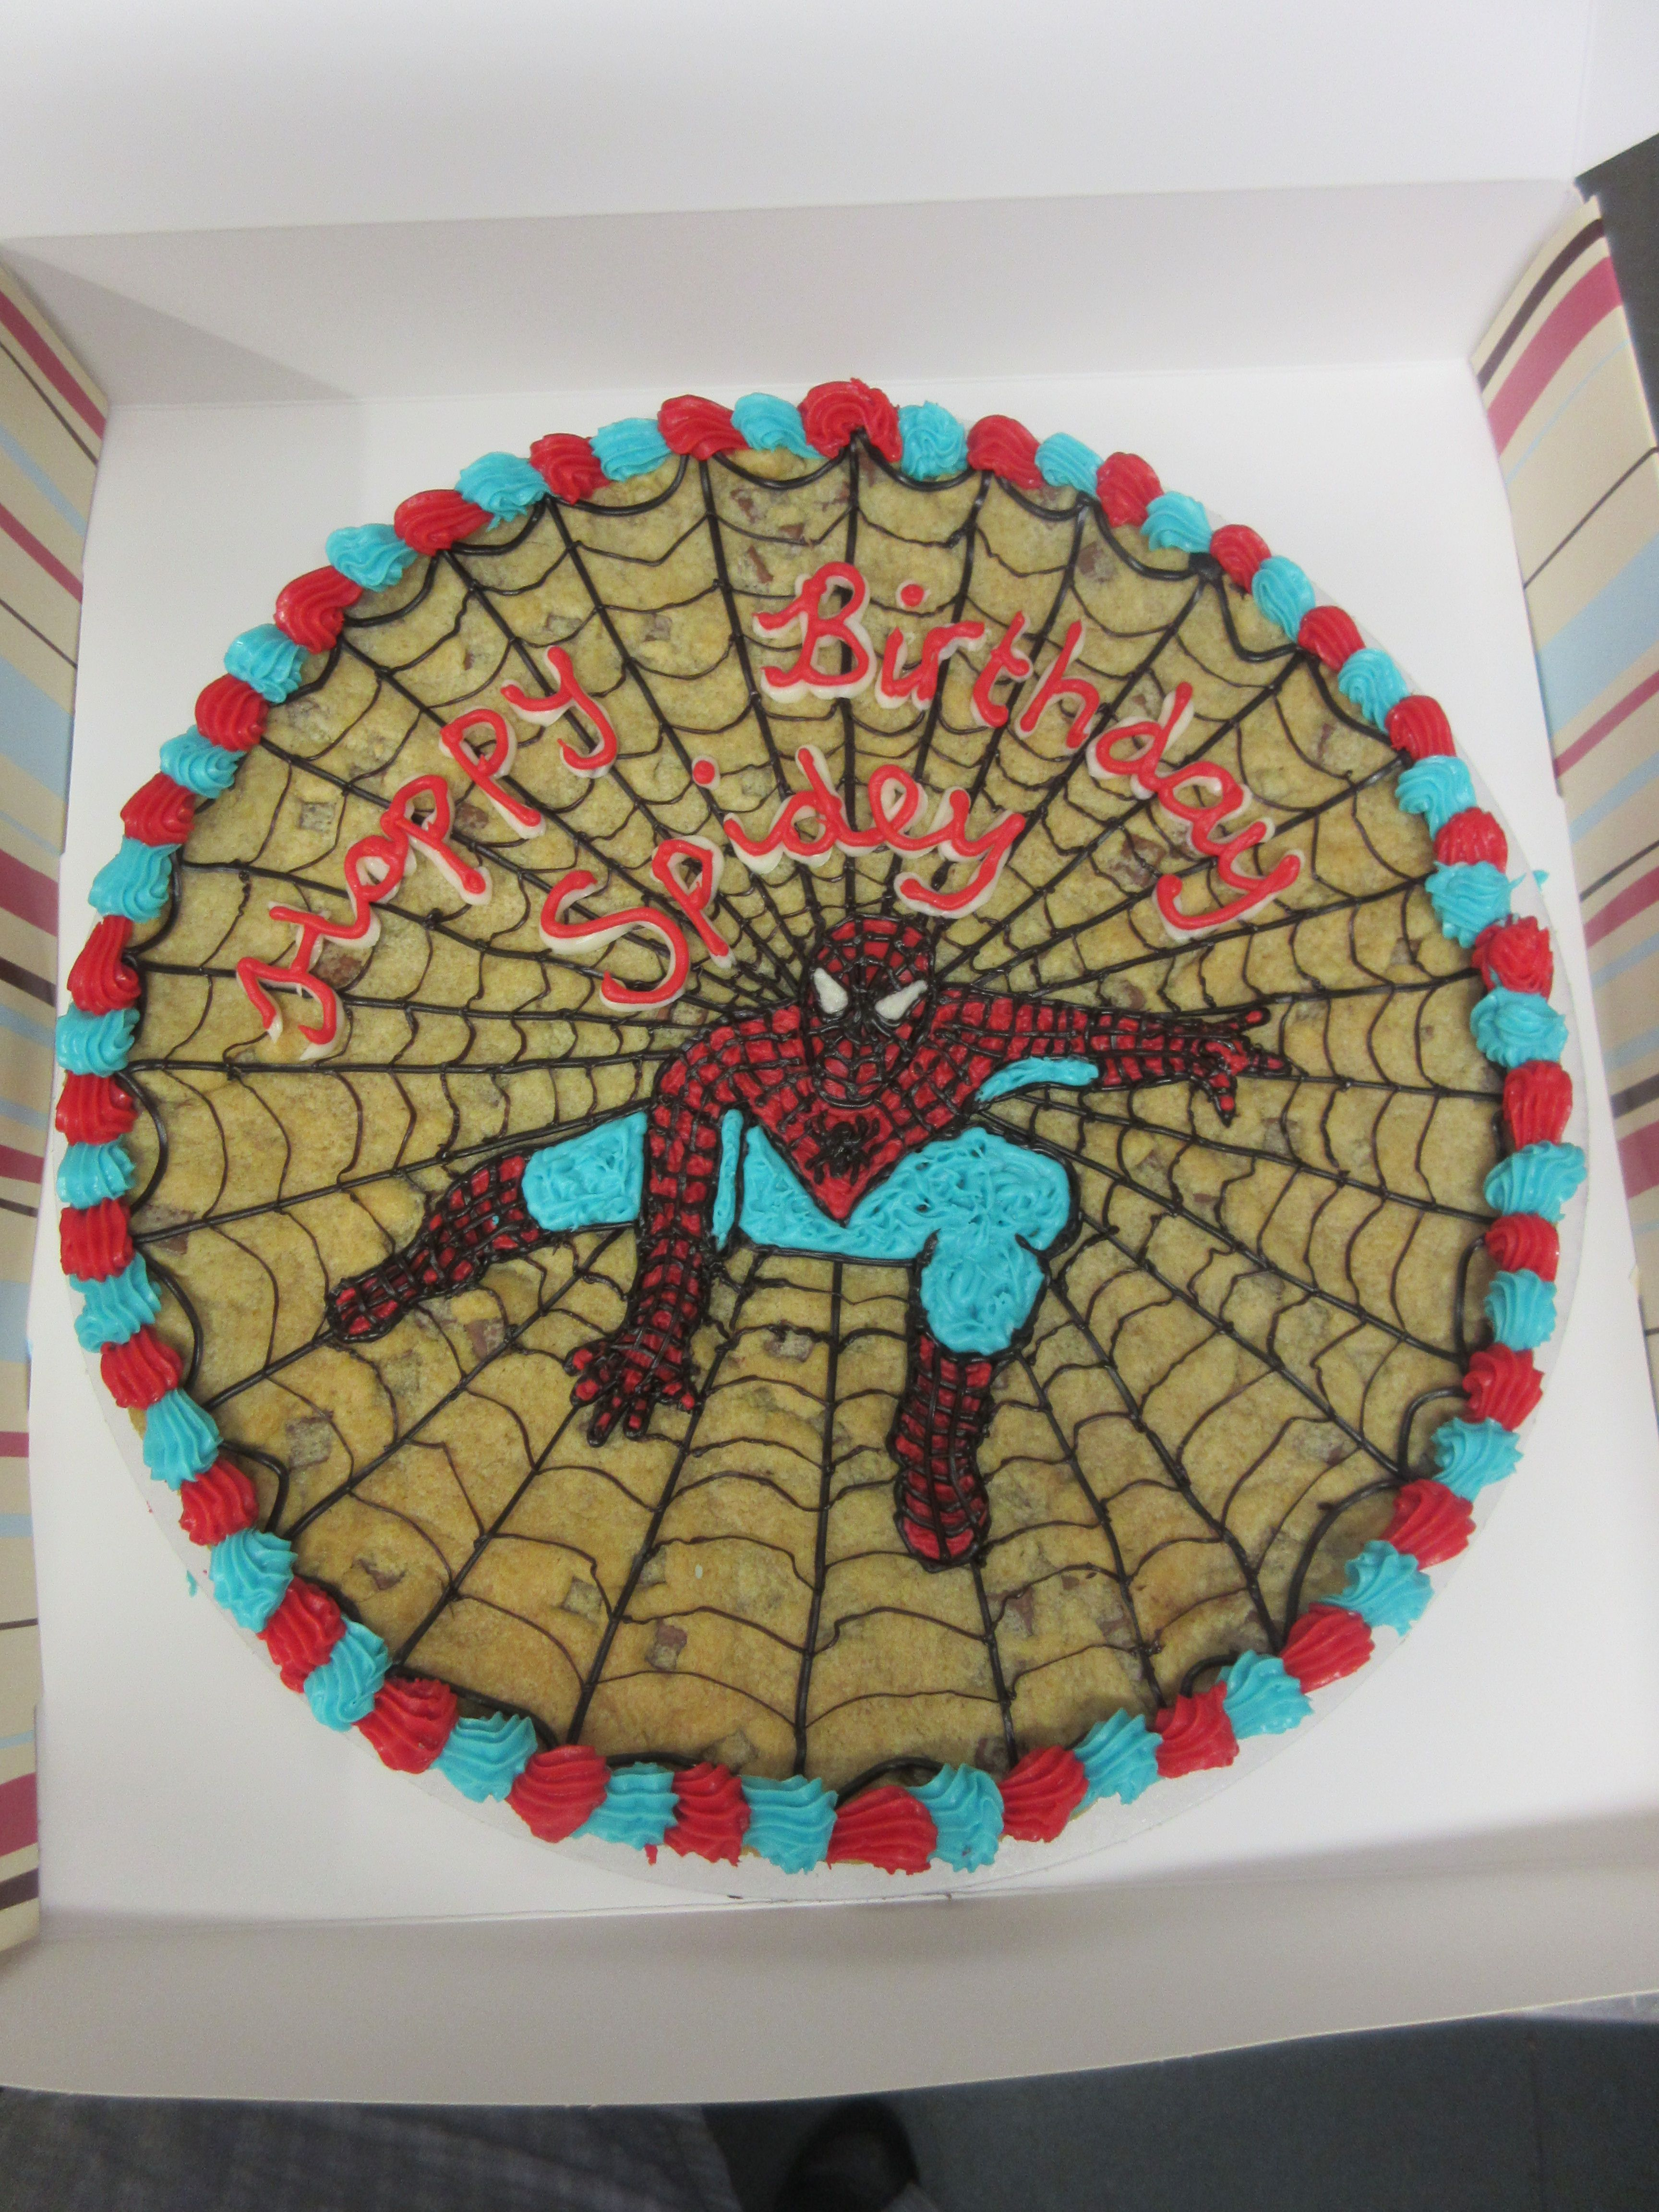 Spiderman Giant Millies Cookie Decorated For 5th Birthday Party By Hjs Visit To Grab An Amazing Super Hero Shirt Now On